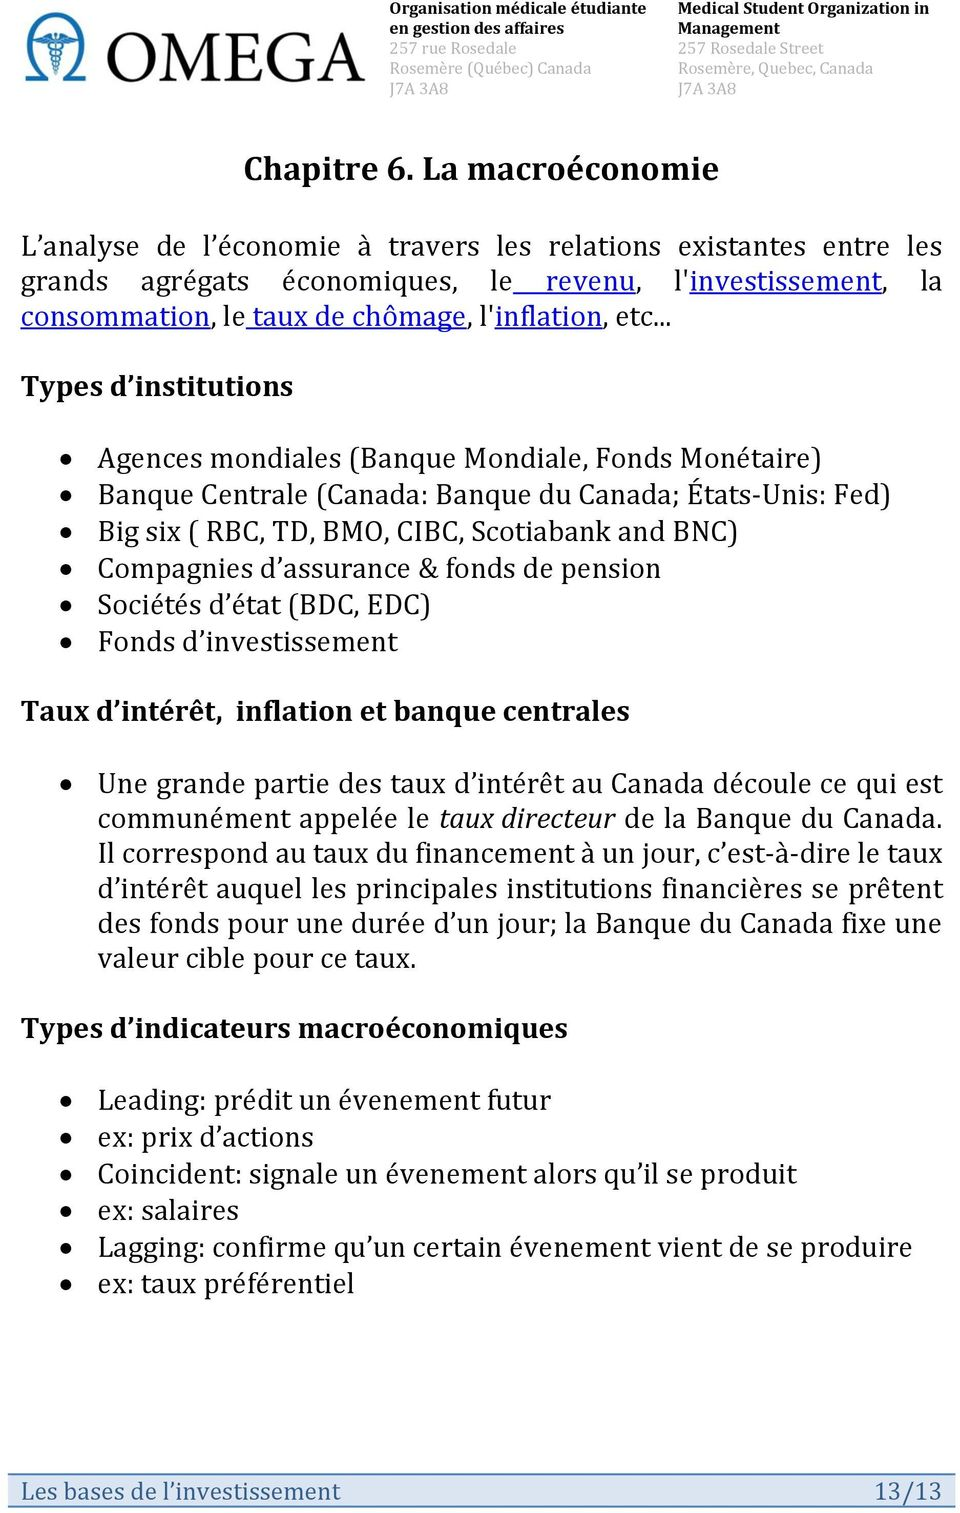 .. Types d institutions Agences mondiales (Banque Mondiale, Fonds Monétaire) Banque Centrale (Canada: Banque du Canada; États-Unis: Fed) Big six ( RBC, TD, BMO, CIBC, Scotiabank and BNC) Compagnies d